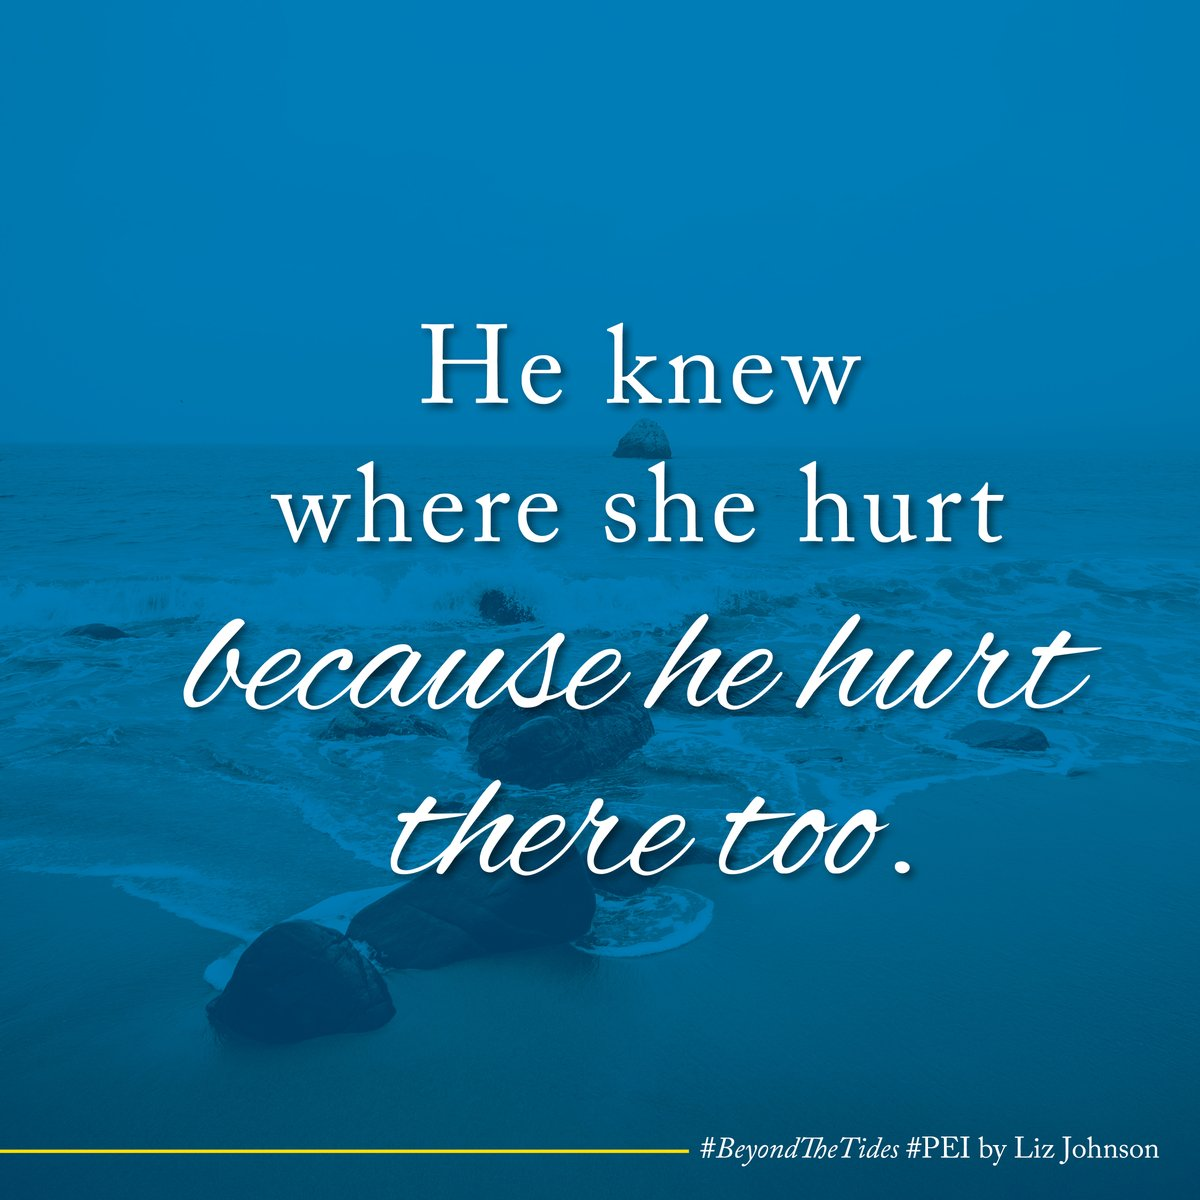 test Twitter Media - We were never meant to bear our burdens alone. But Meg Whitaker discovers a most unlikely support in her rival for her father's fishing business. But maybe Oliver knew where she hurt because he hurt there too.   Take a trip with me back to #PEI in #BeyondTheTides. https://t.co/CLappbAUGq